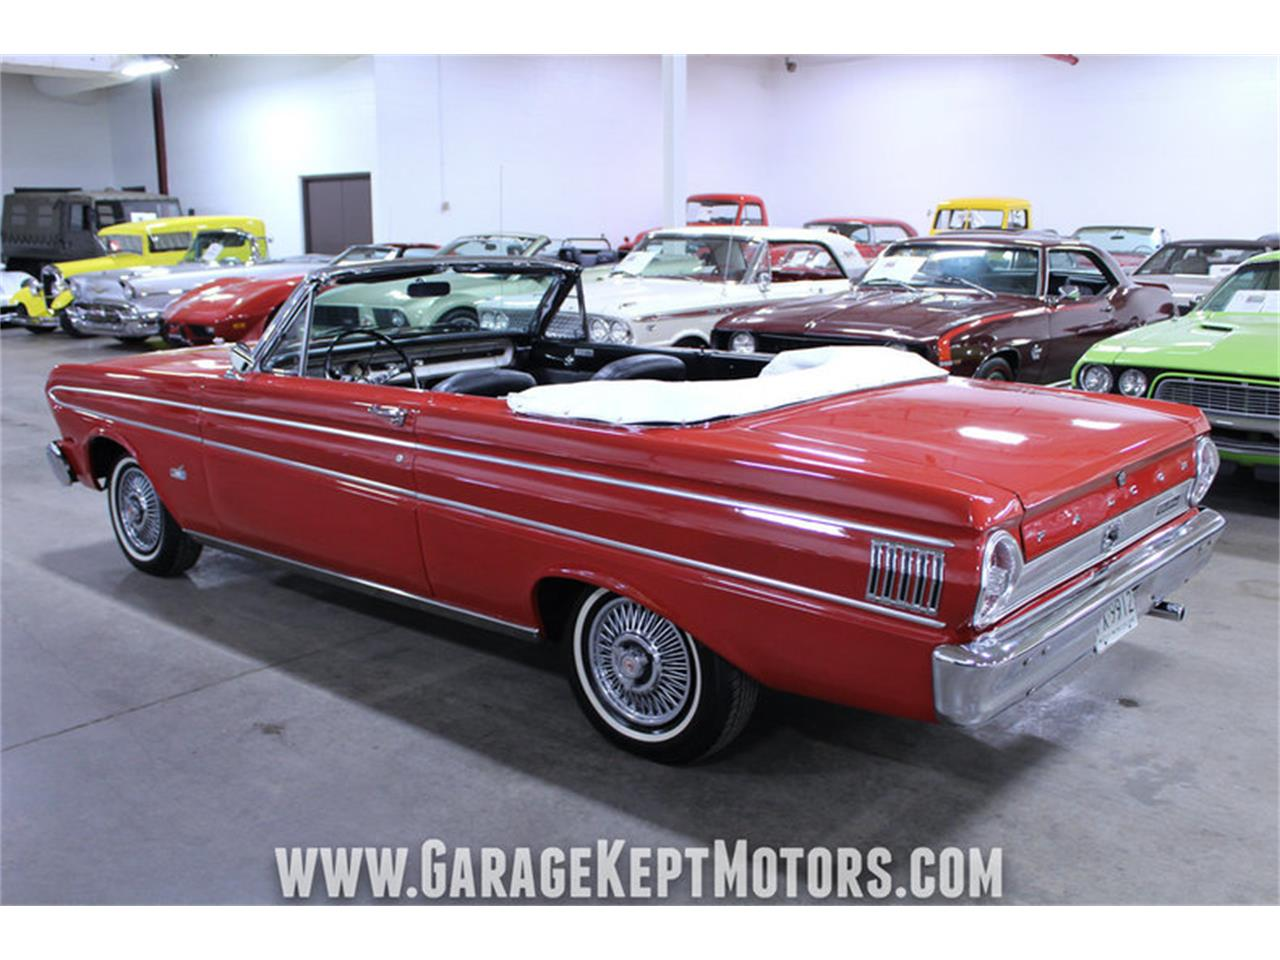 1964 Ford Falcon For Sale Cc 1090713 Futura Convertible Large Picture Of 64 Ndll